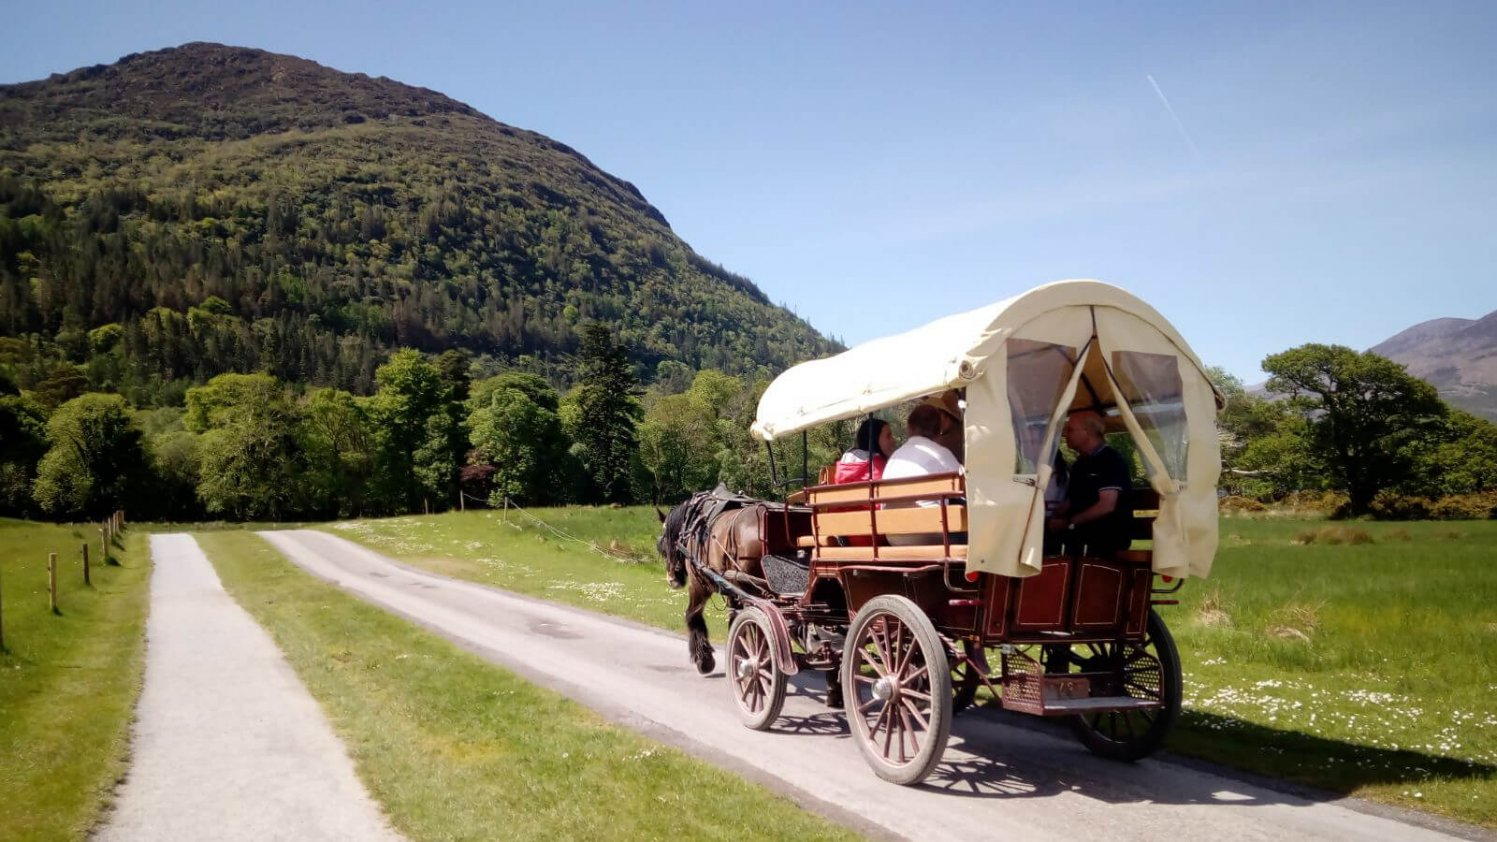 A horse-drawn jaunting carriage moves through the scenery of Killarney National Park